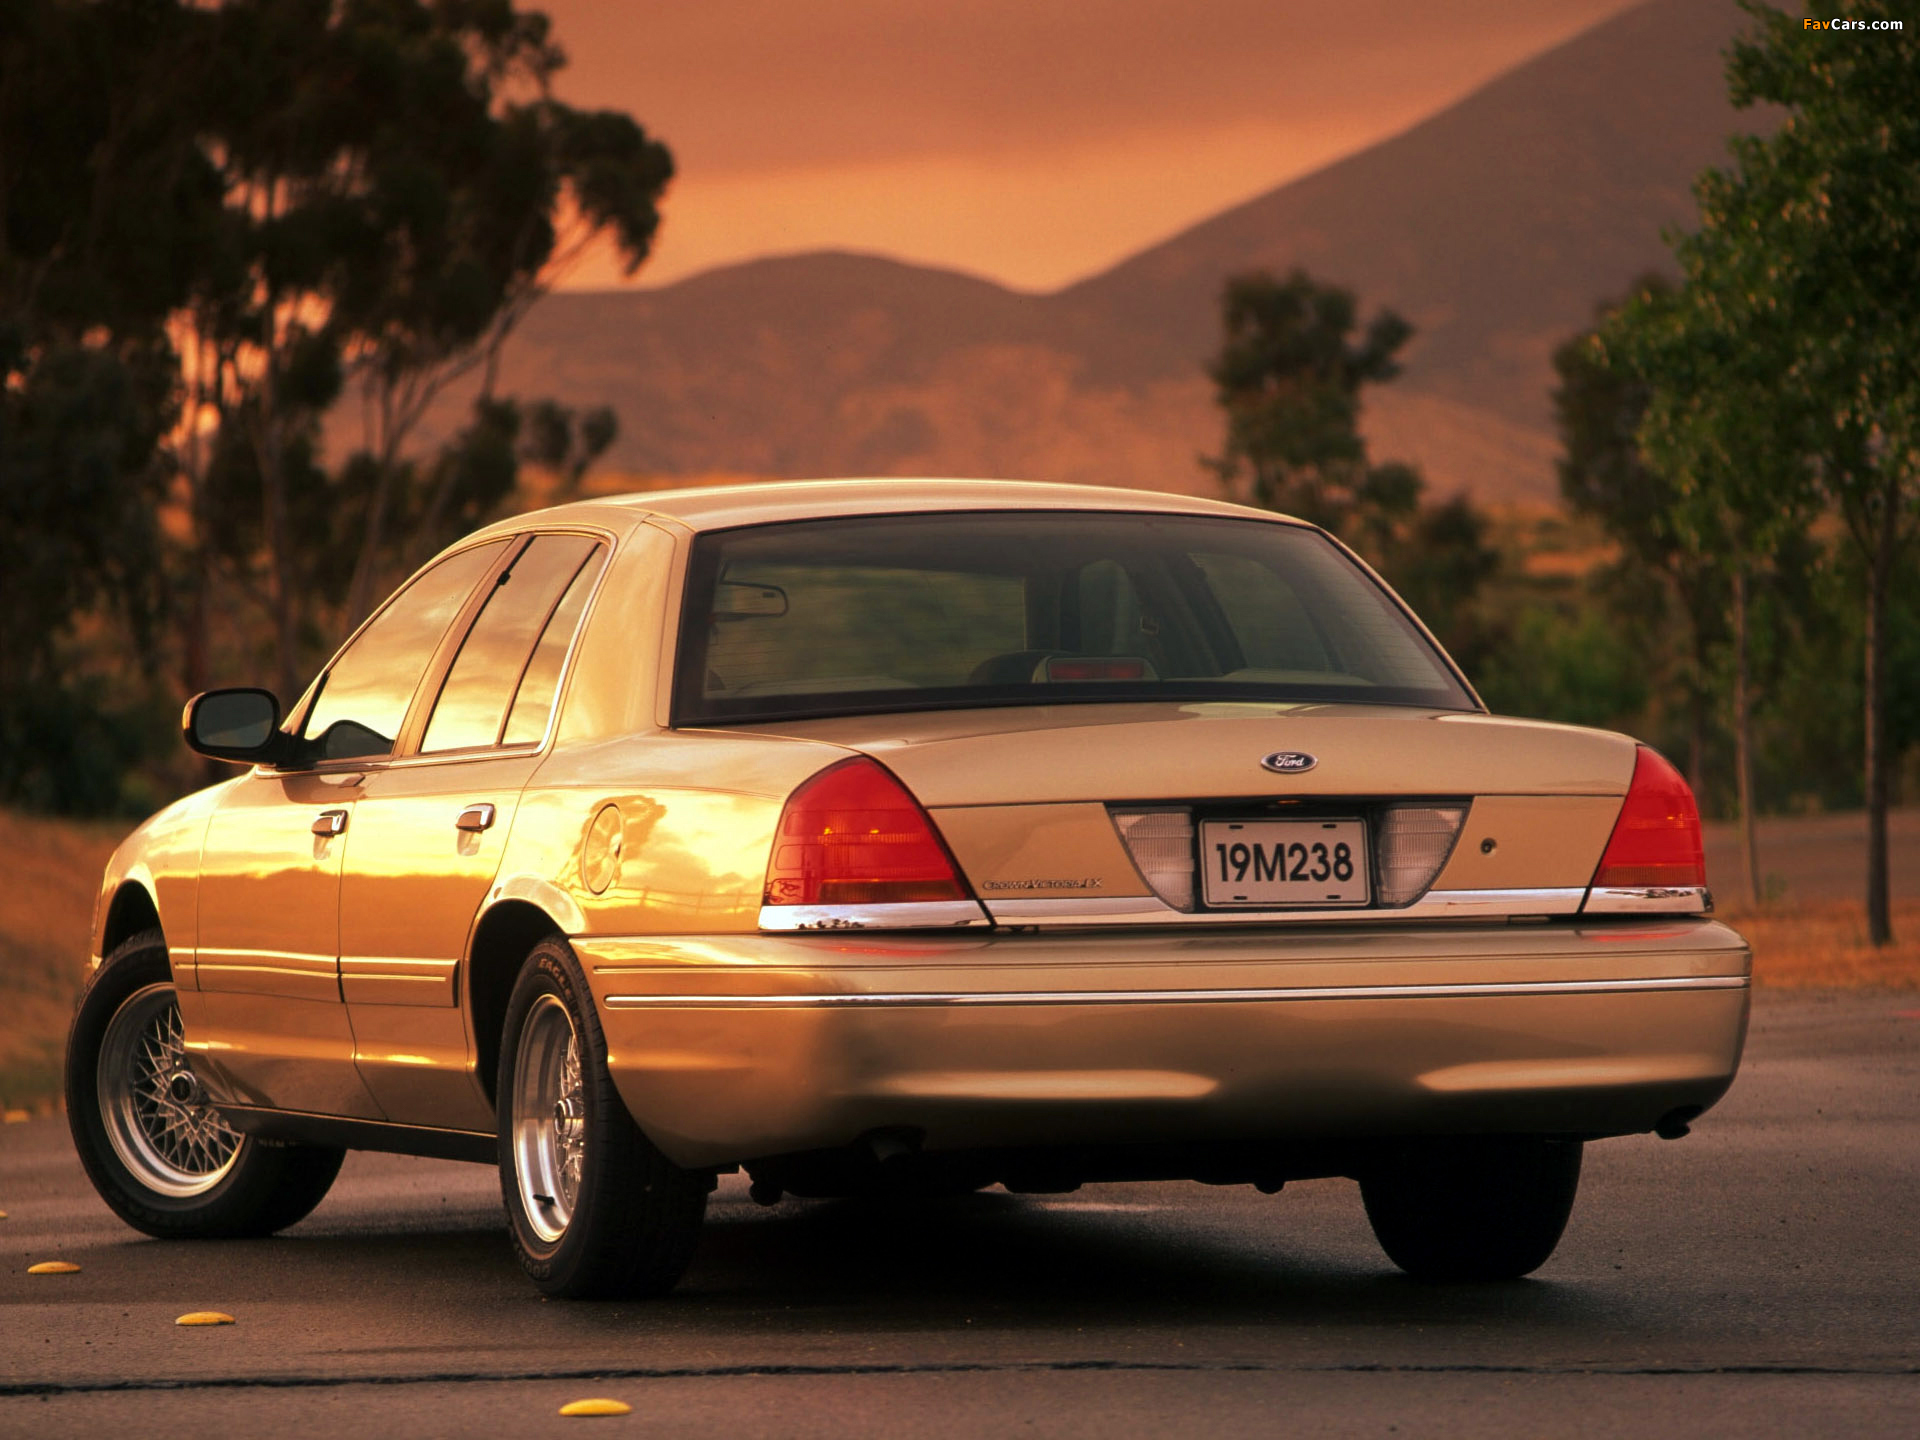 1998 Ford Crown Victoria #14